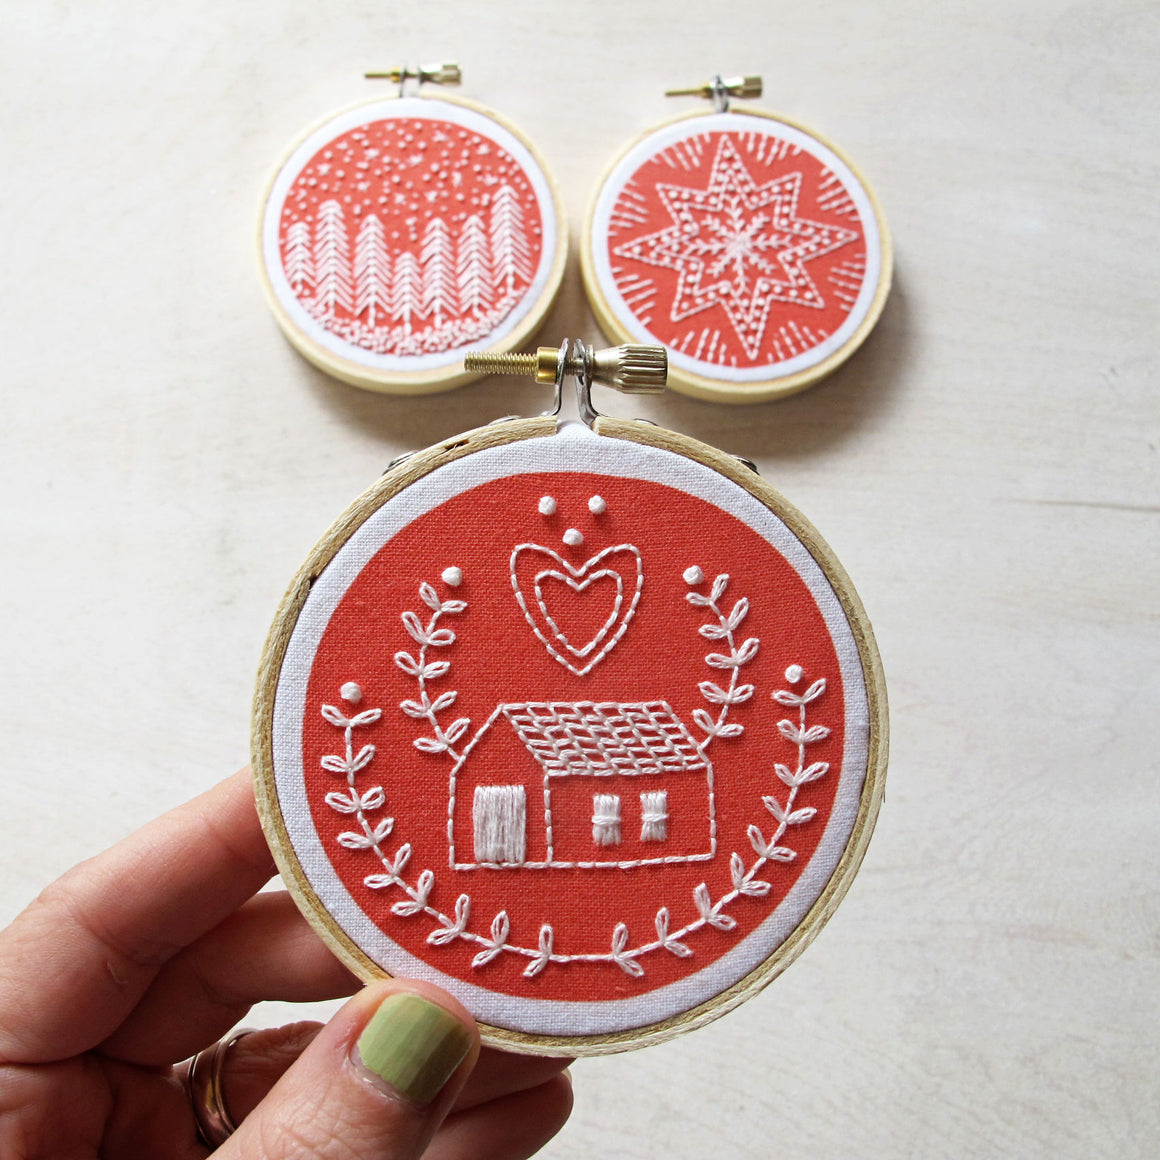 cozyblue Embroidery Kit :: Holiday Ornaments Patterns - Snuggly Monkey